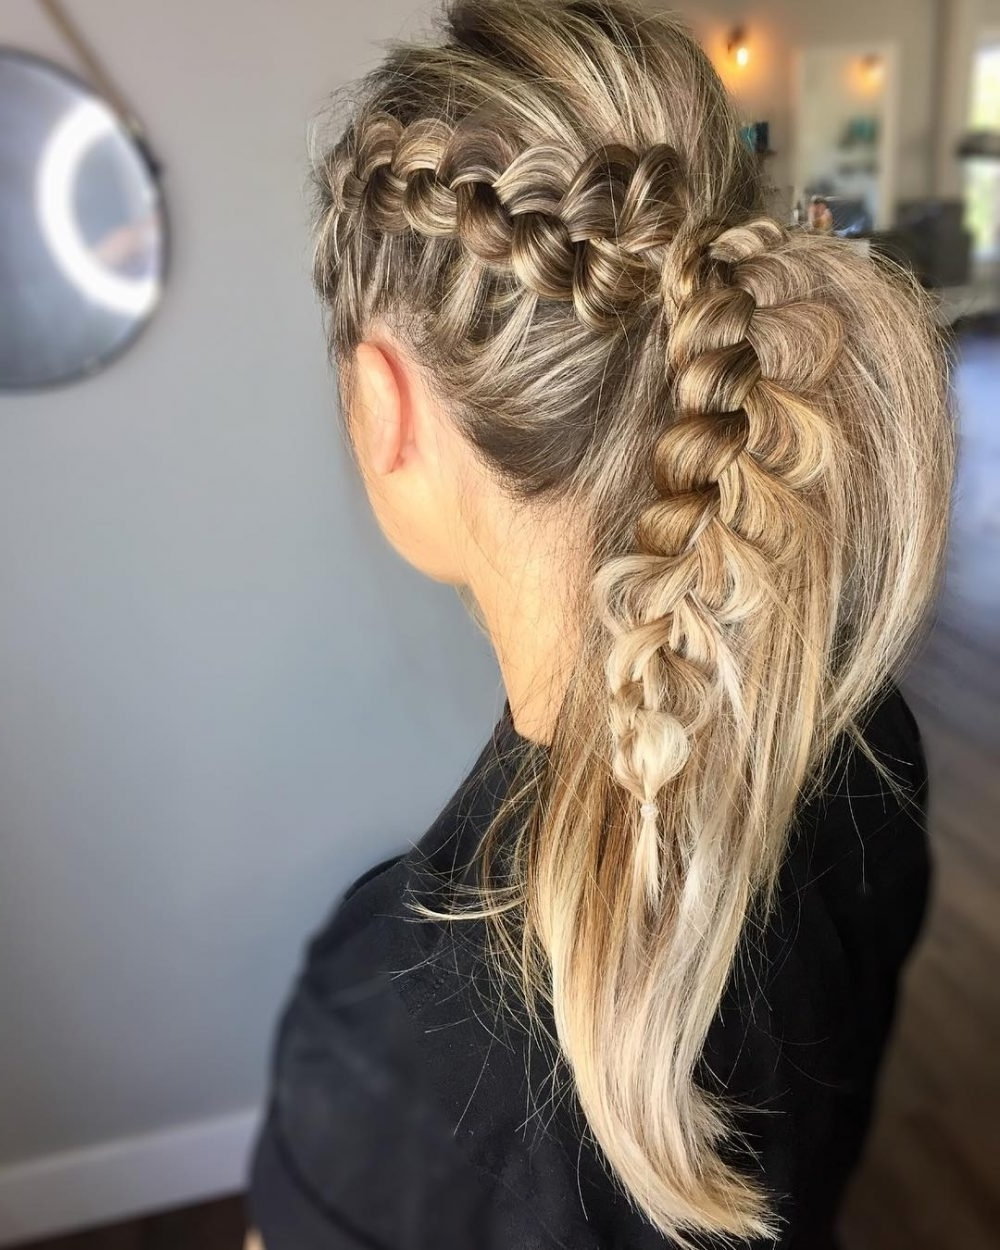 38 Ridiculously Cute Hairstyles For Long Hair (popular In 2018) Intended For Newest Two Toned Pony Hairstyles For Fine Hair (View 14 of 20)